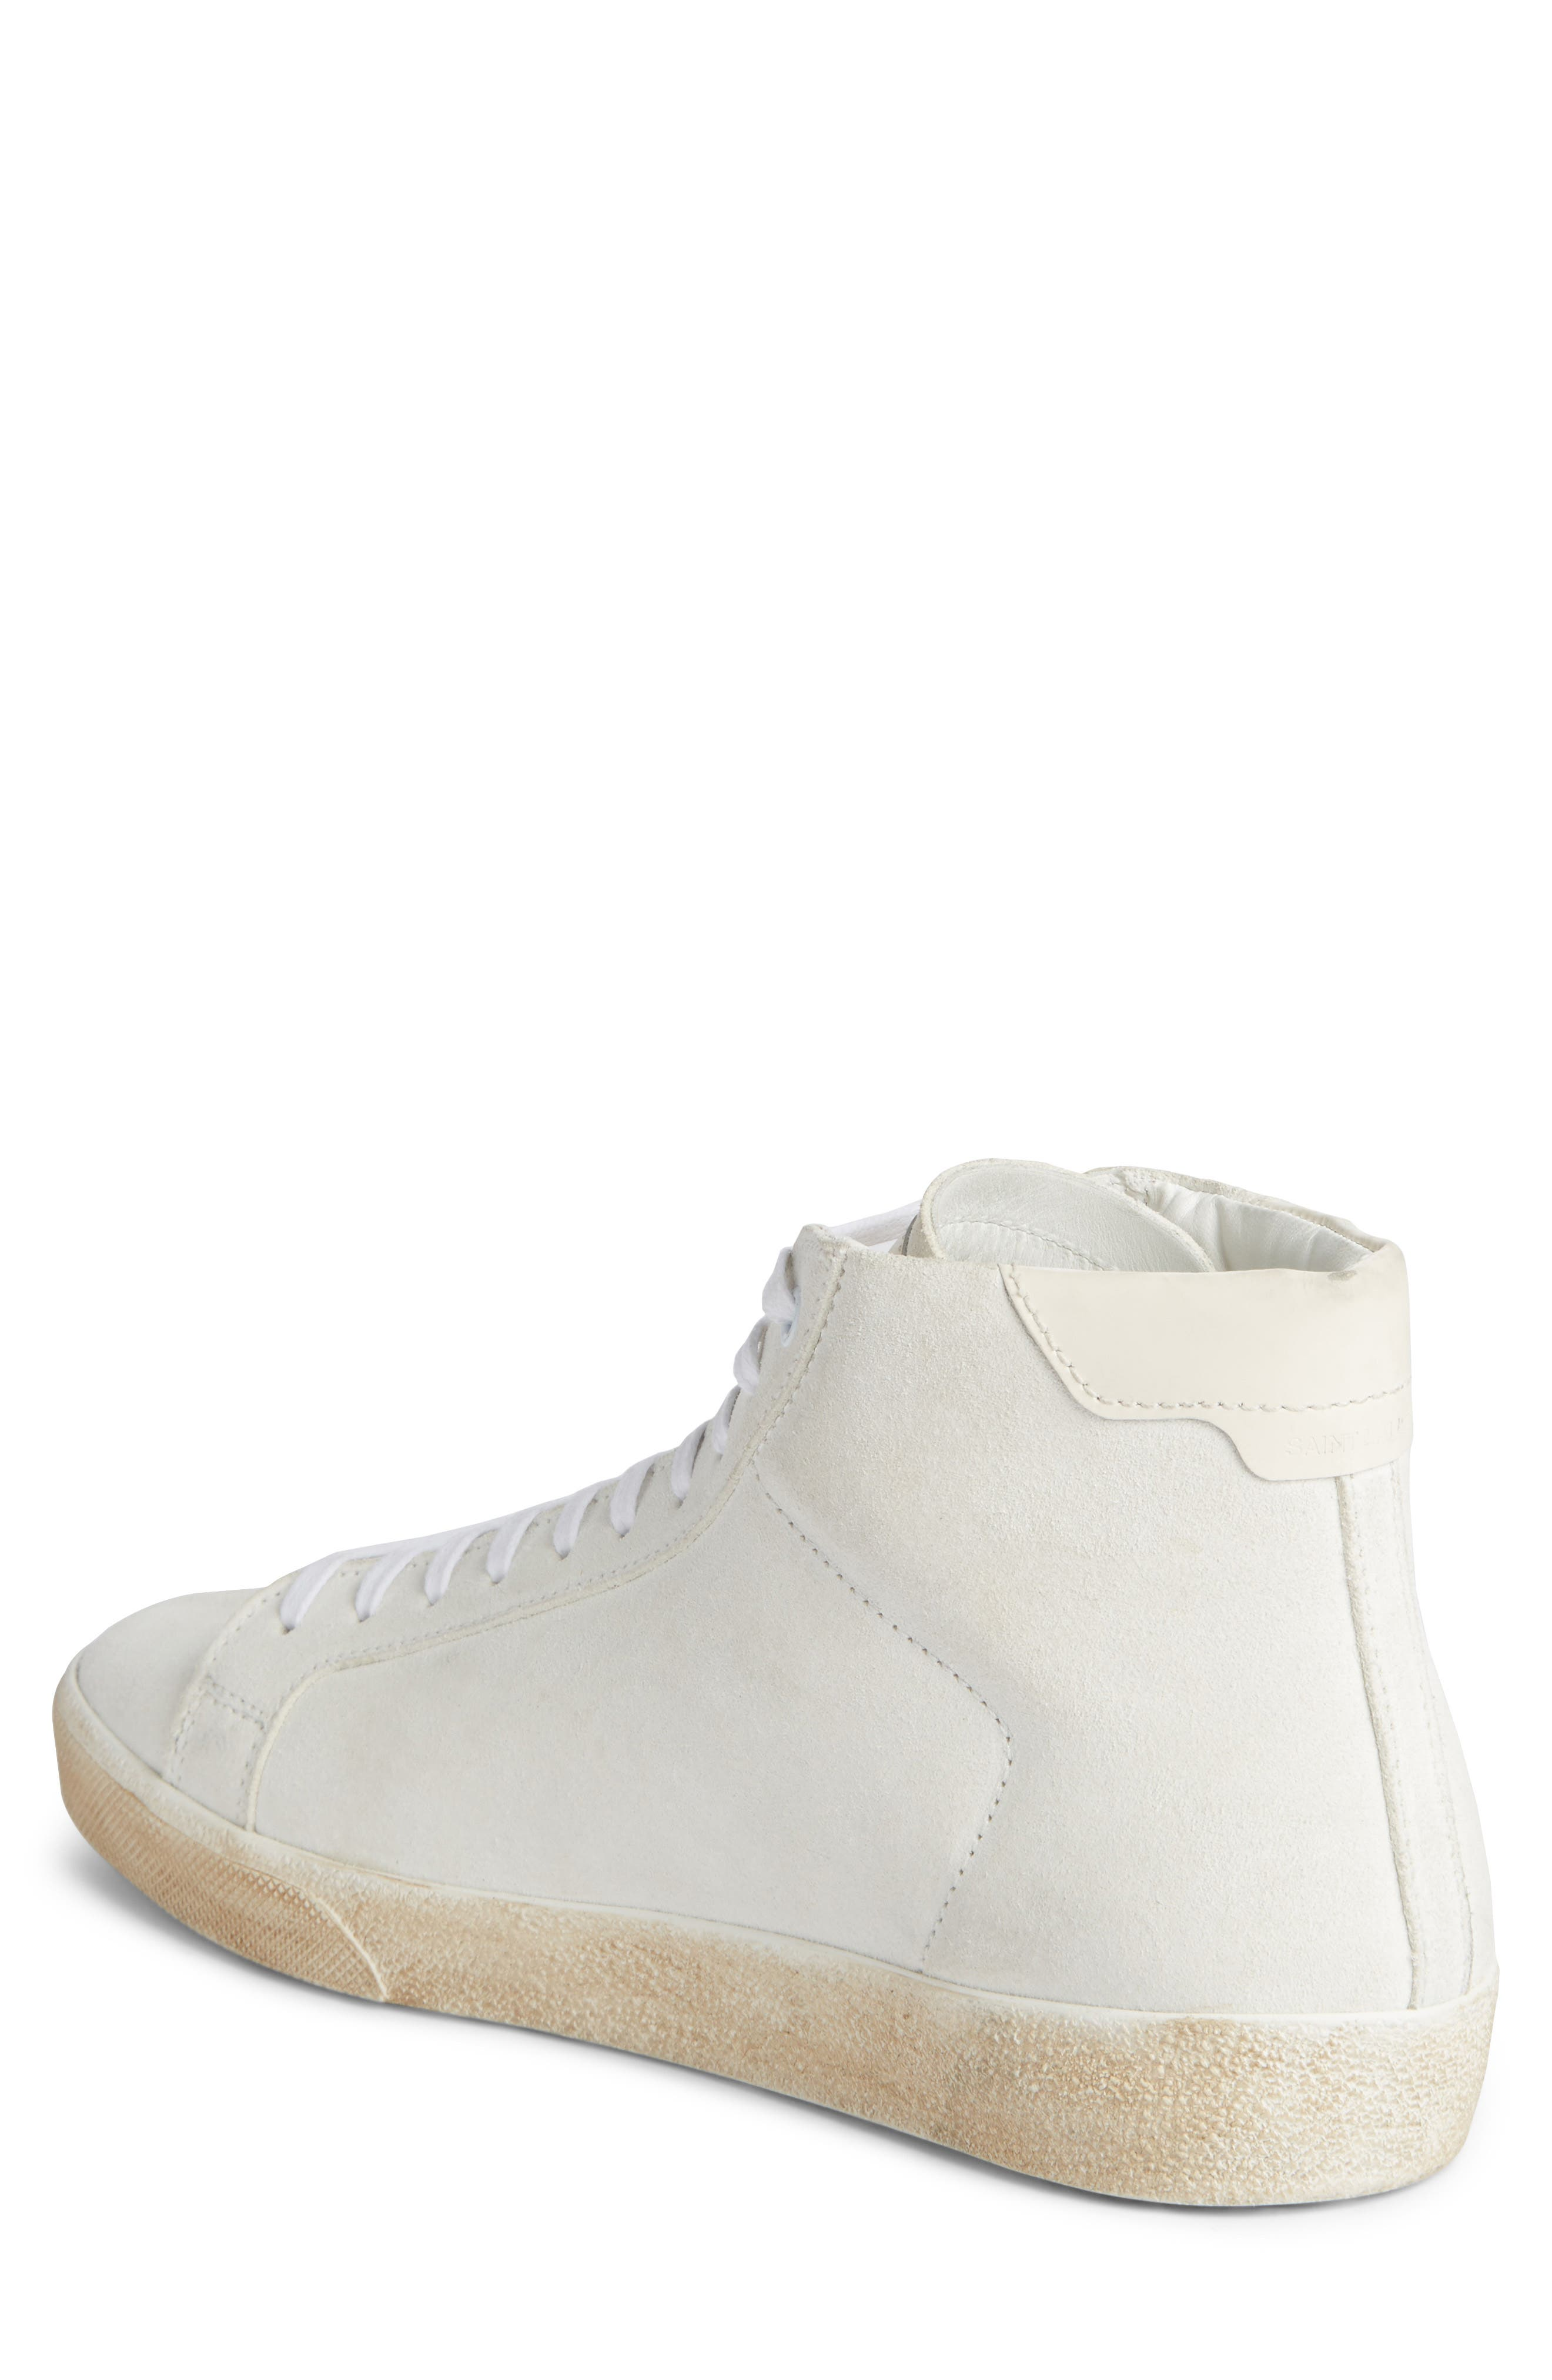 High Top Sneaker,                             Alternate thumbnail 2, color,                             White Canvas